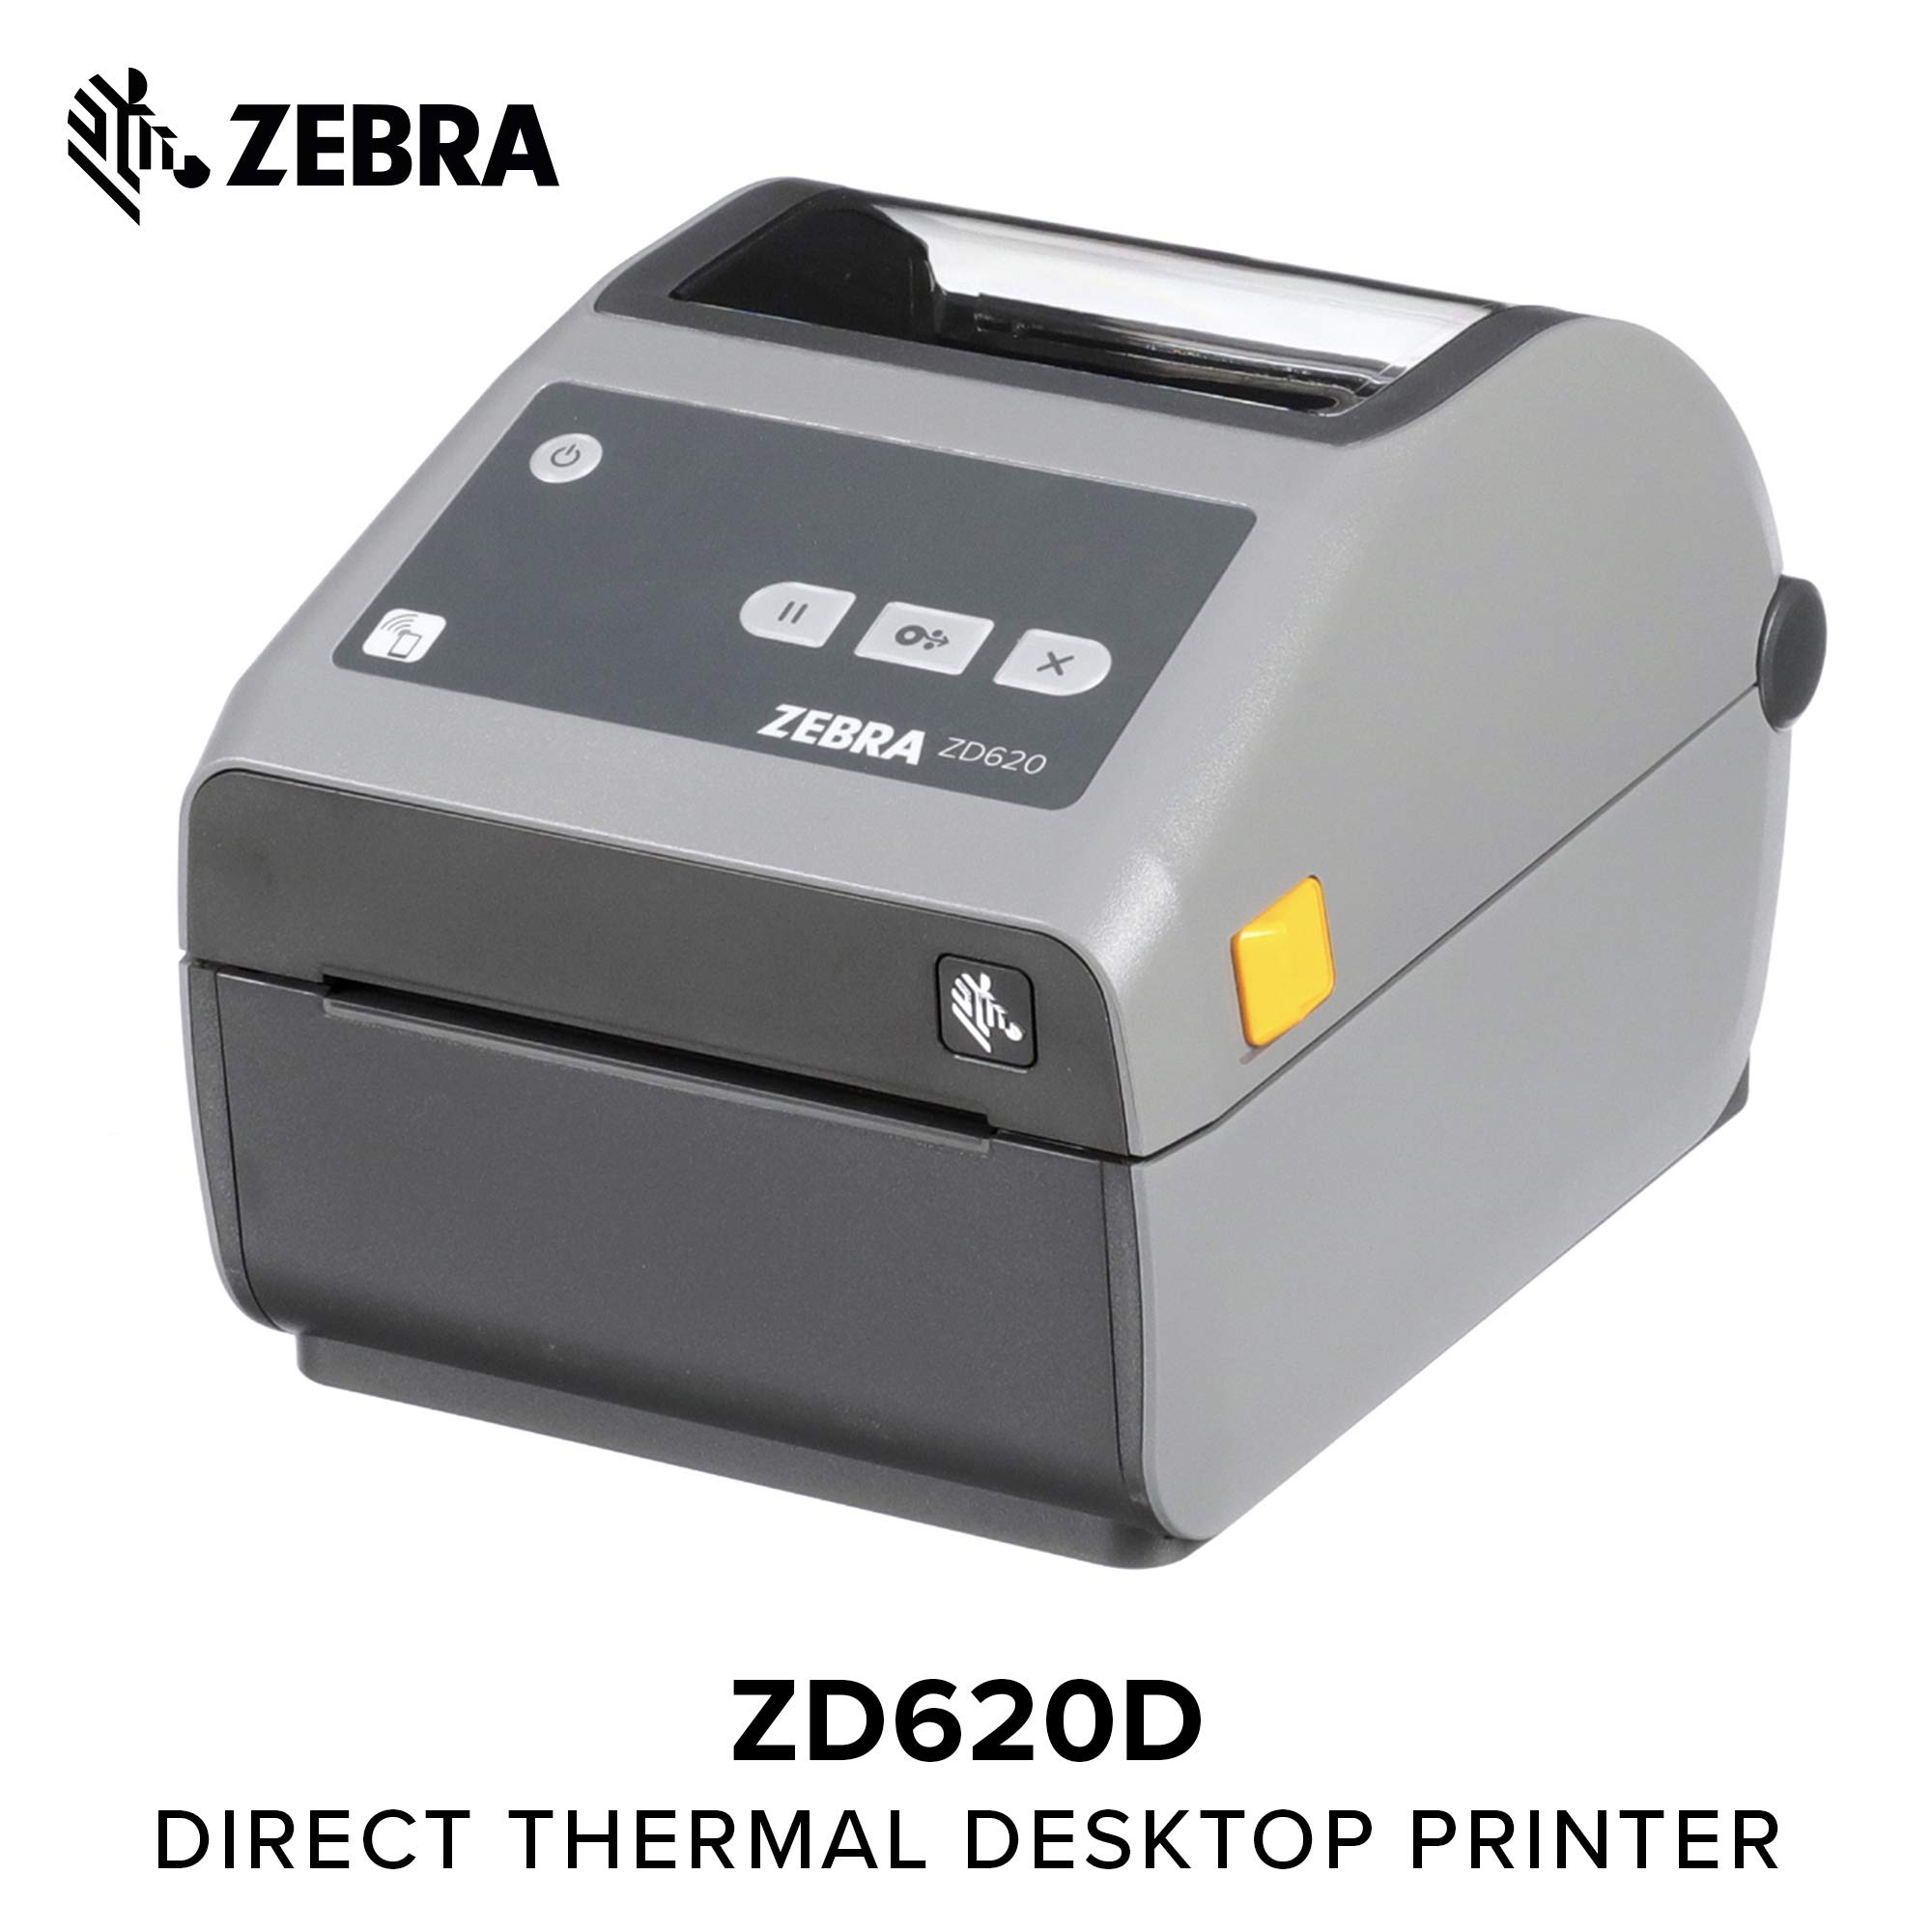 Zebra - ZD620d Direct Thermal Desktop Printer for Labels and Barcodes - Print Width 4 in - 300 dpi - Interface: Ethernet, Serial, USB - ZD62043-D01F00EZ